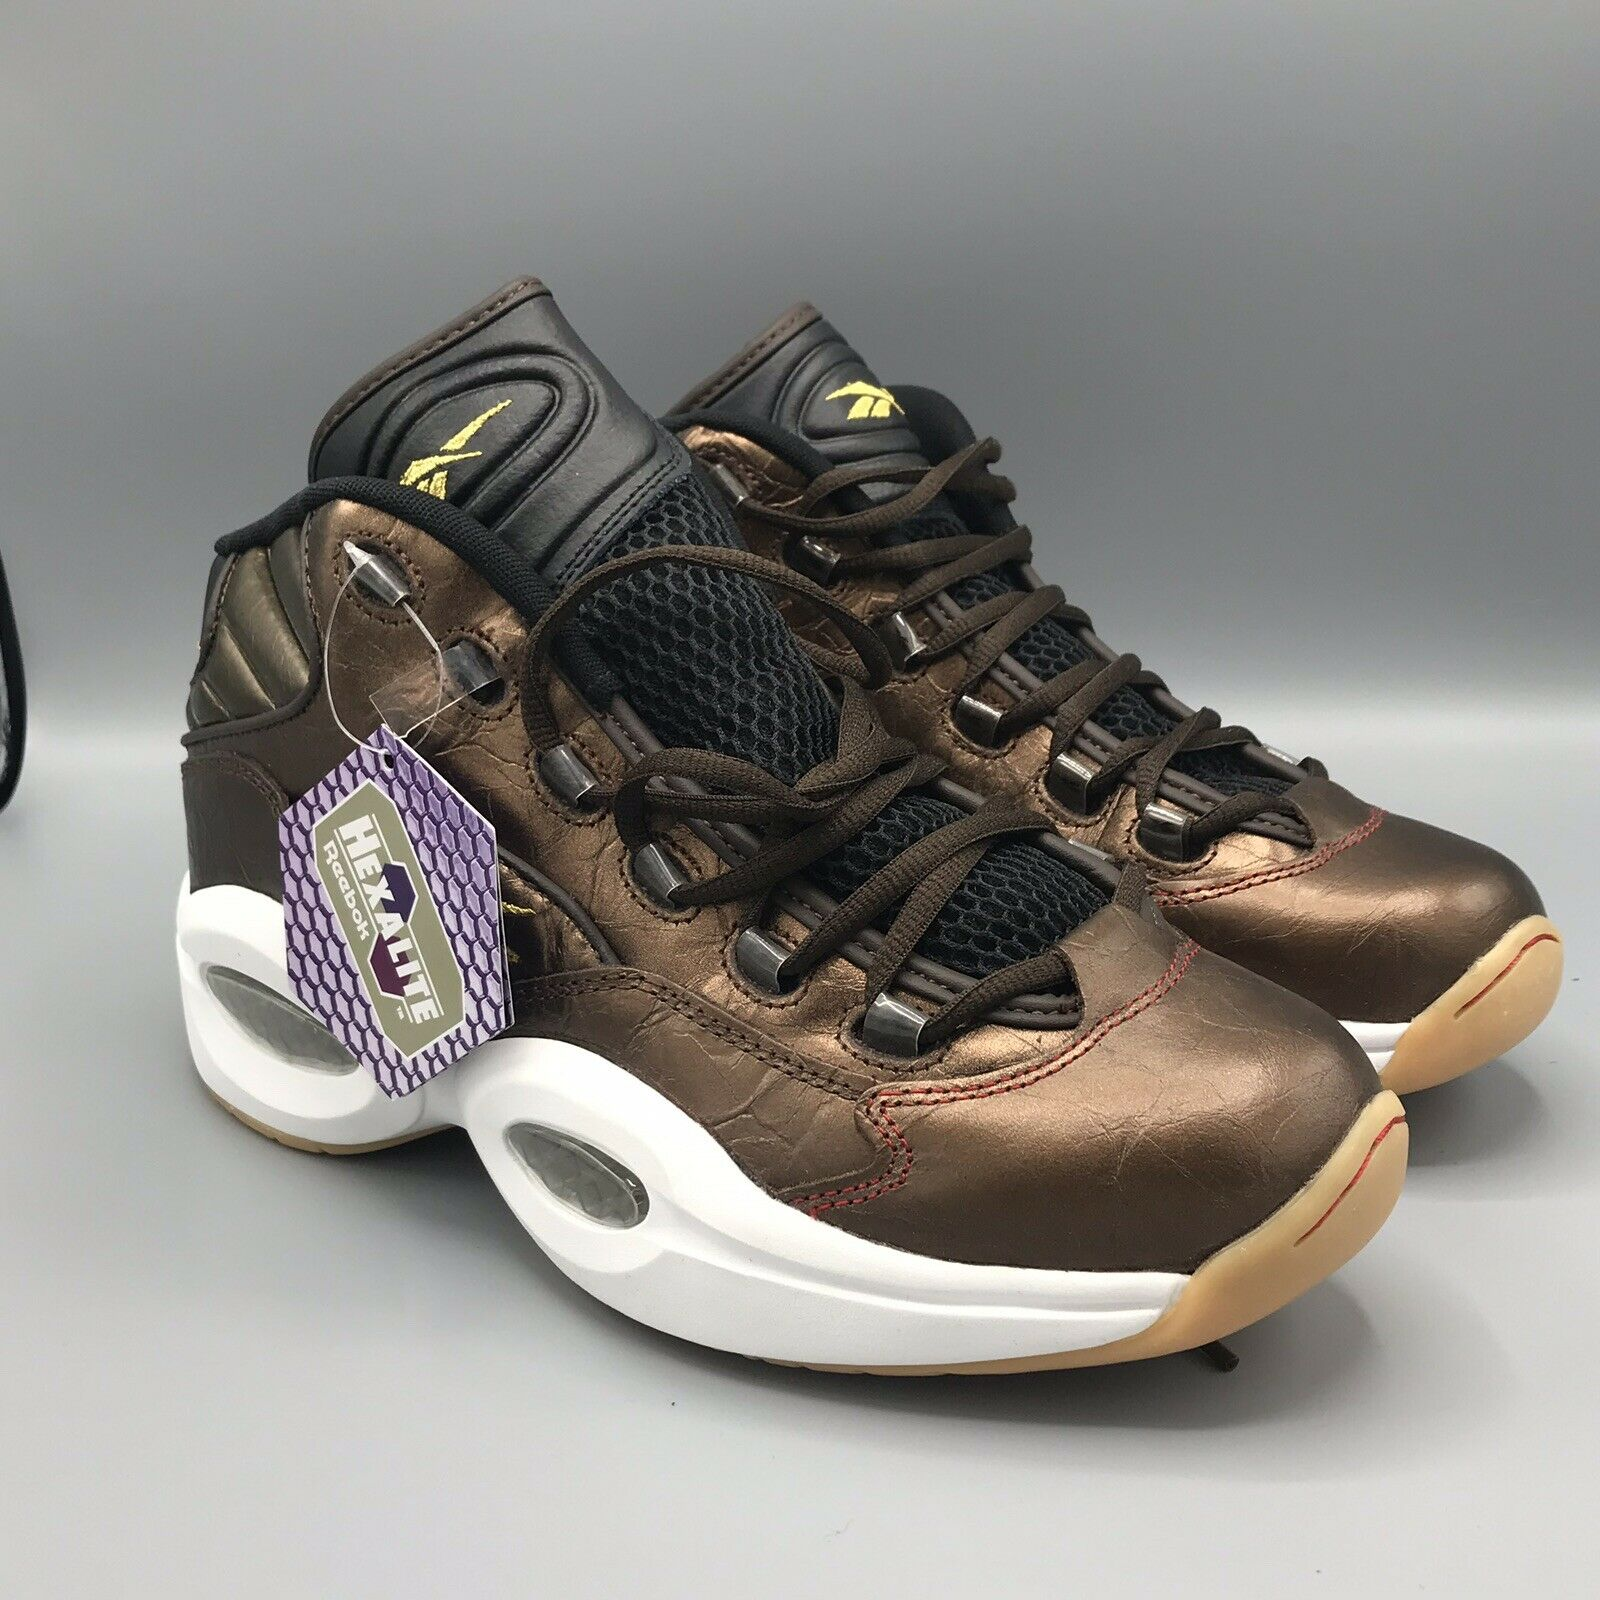 BD5844 REEBOK QUESTION MID X VILLA ALLEN IVERSON RETRO DRK DRK DRK Marronee BRASS 9.5 5f0713